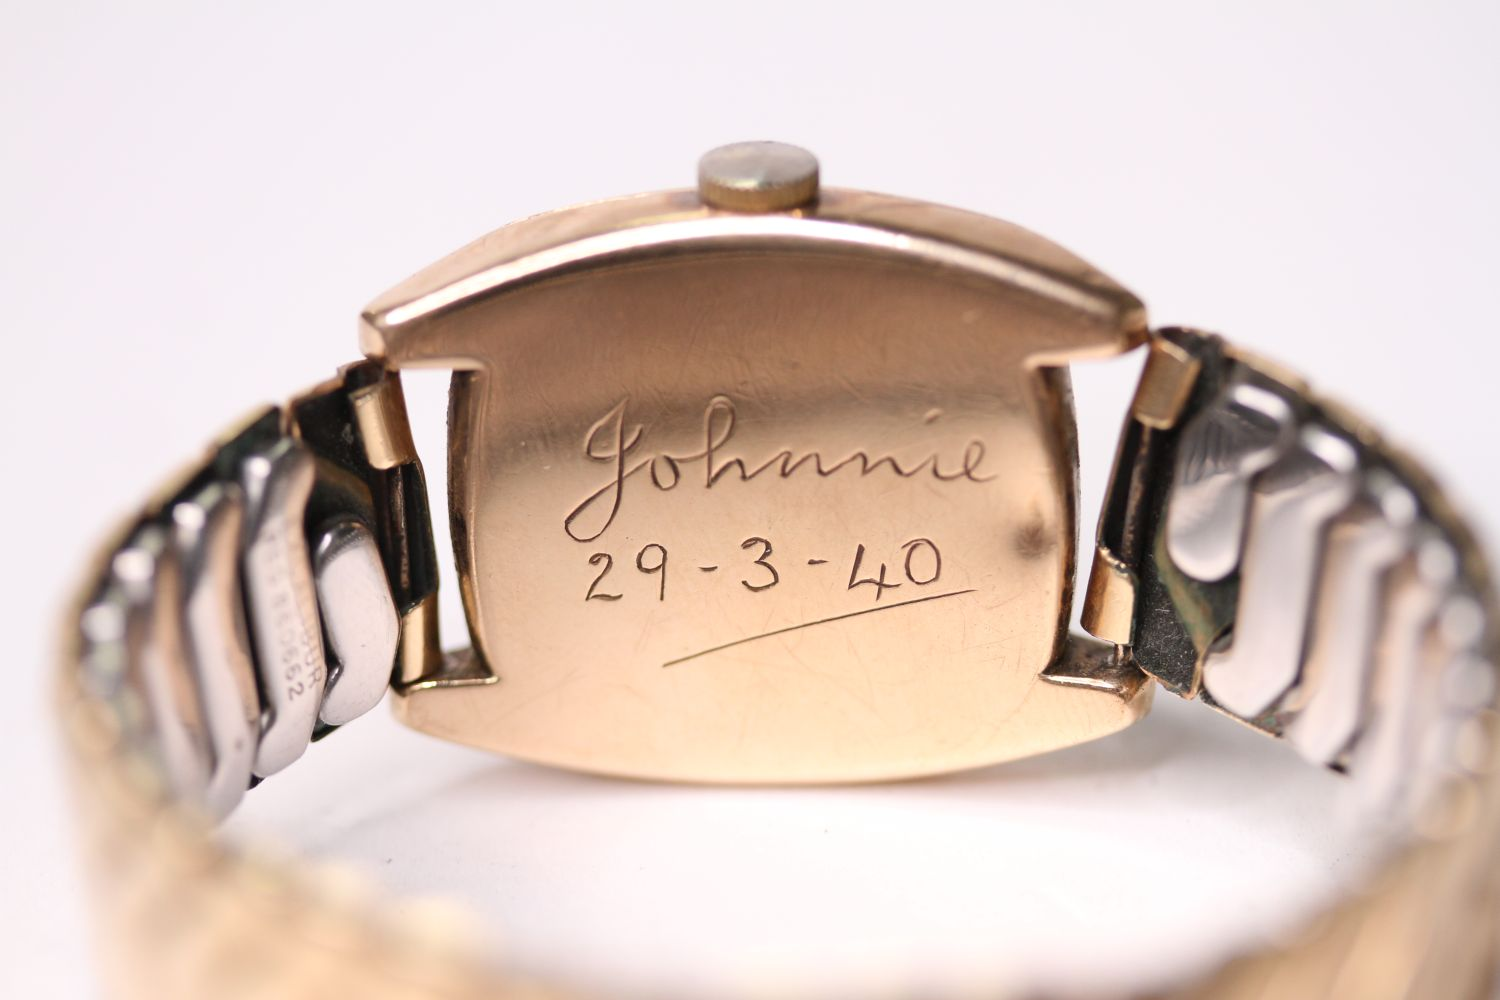 VINTAGE ROLEX WRISTWATCH, circular cream dial with arabic numbers, small seconds at 6 0'clock, - Image 2 of 3